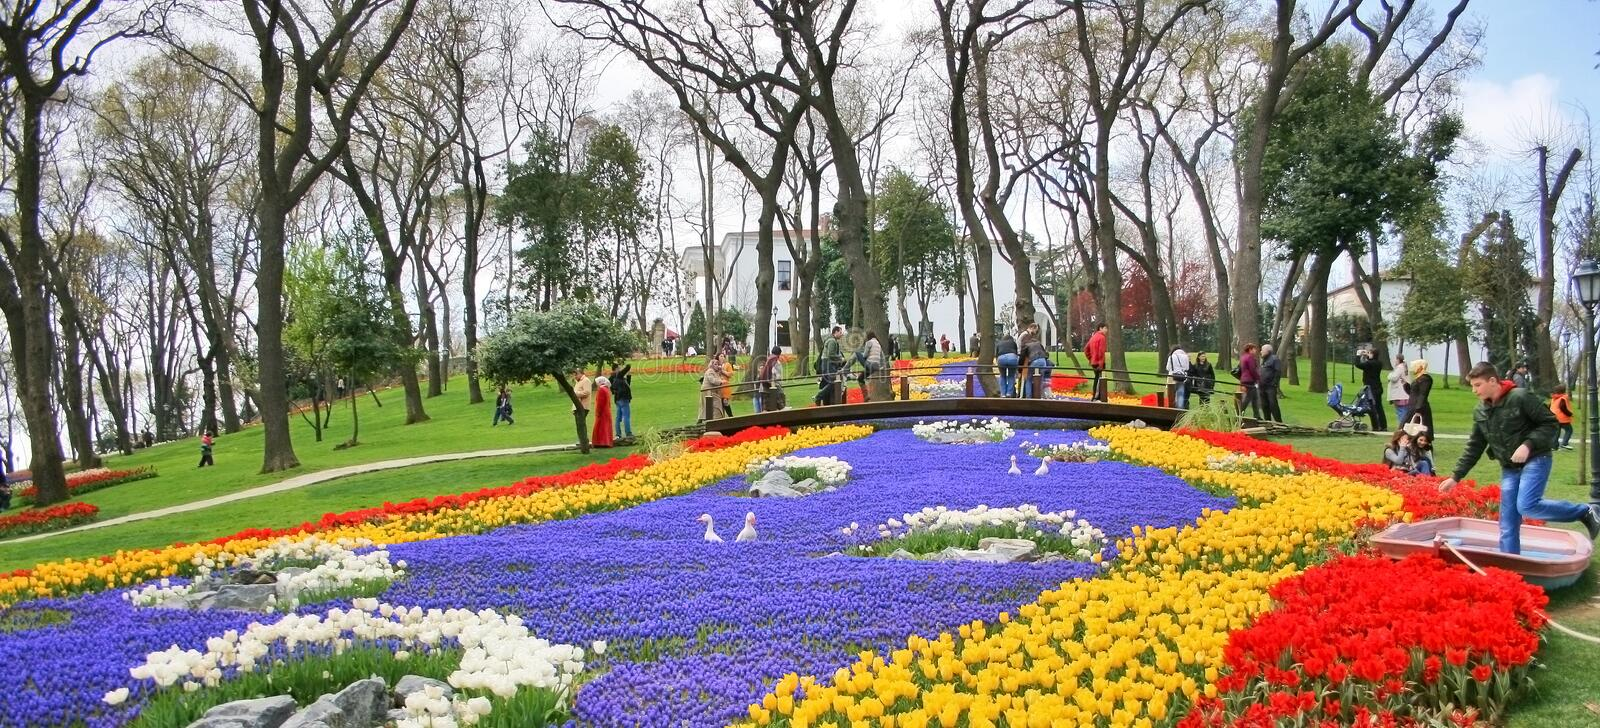 Internationales Tulpe-Fest, Istanbul, die Türkei stockfotos